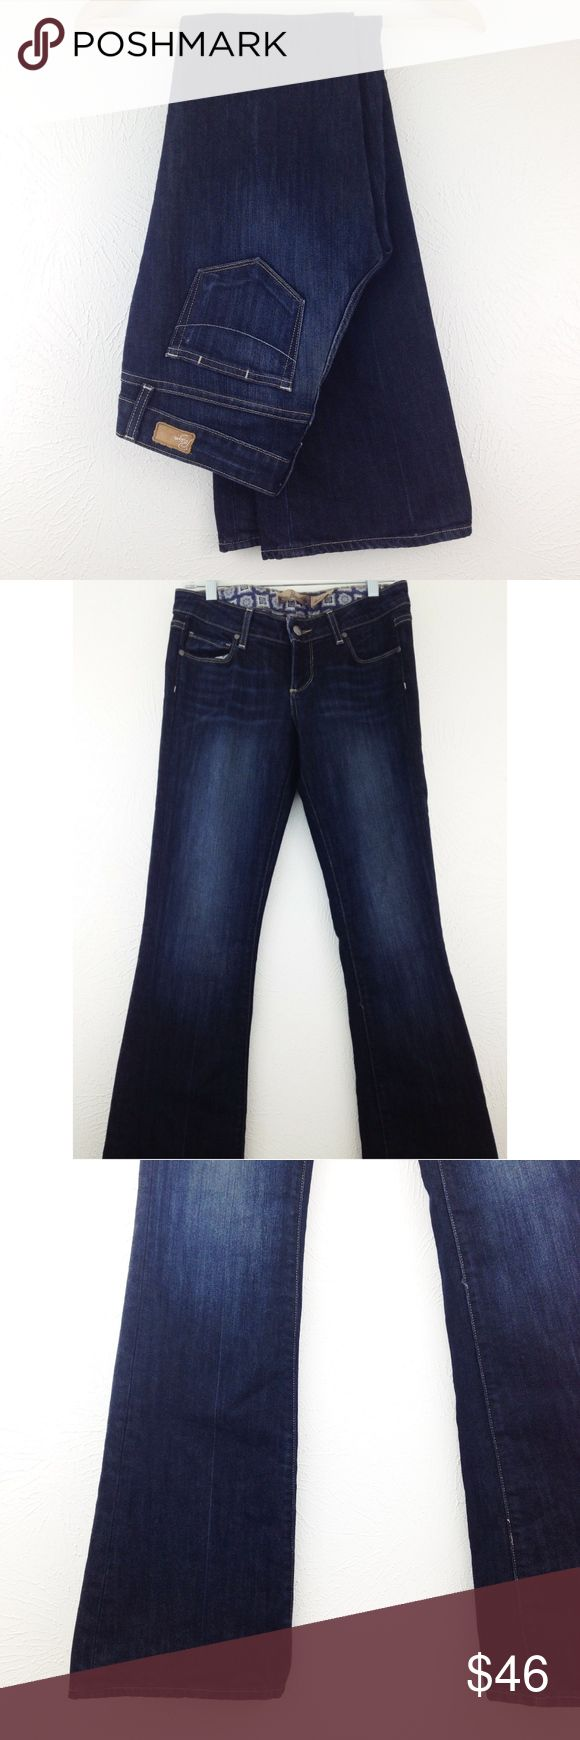 """Paige Jeans """"Laurel Canyon"""" Bootcut Paige Jeans bootcut jeans, """"Laurel Canyon"""" style. Low-rise, slim through the hips and thighs. Dark wash. 60% cotton, 40% polyester. Approximately 41"""" long, 34"""" inseam, 7.5"""" rise.  Excellent condition.  (C06) Paige Jeans Jeans Boot Cut"""